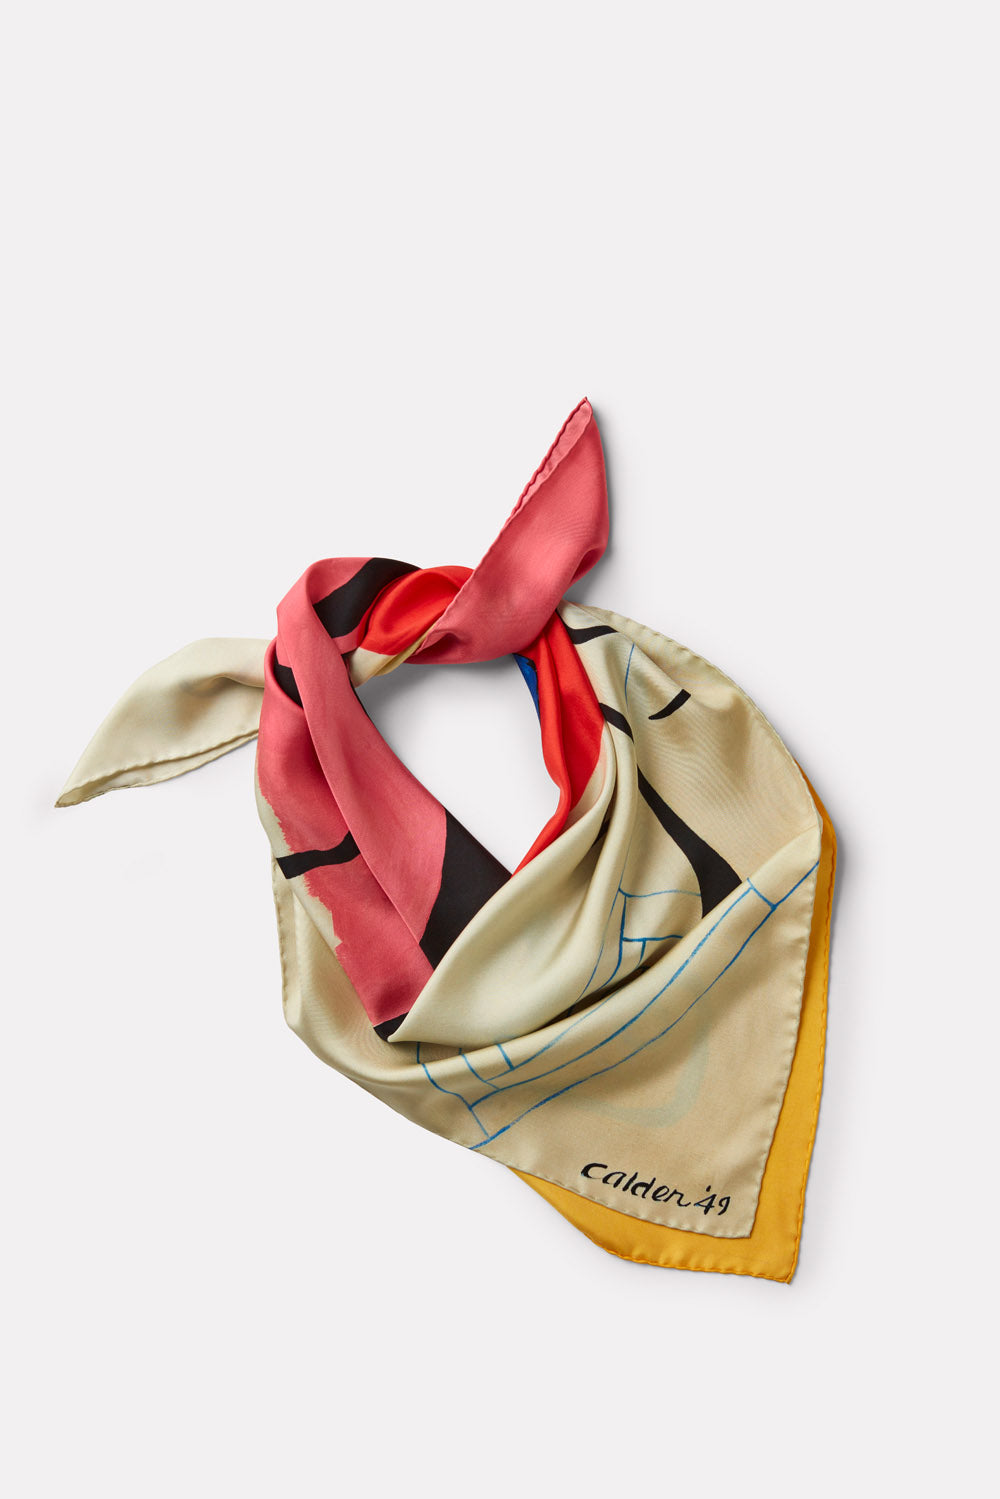 Calder Silk Scarf - 'Starfish on Pink'